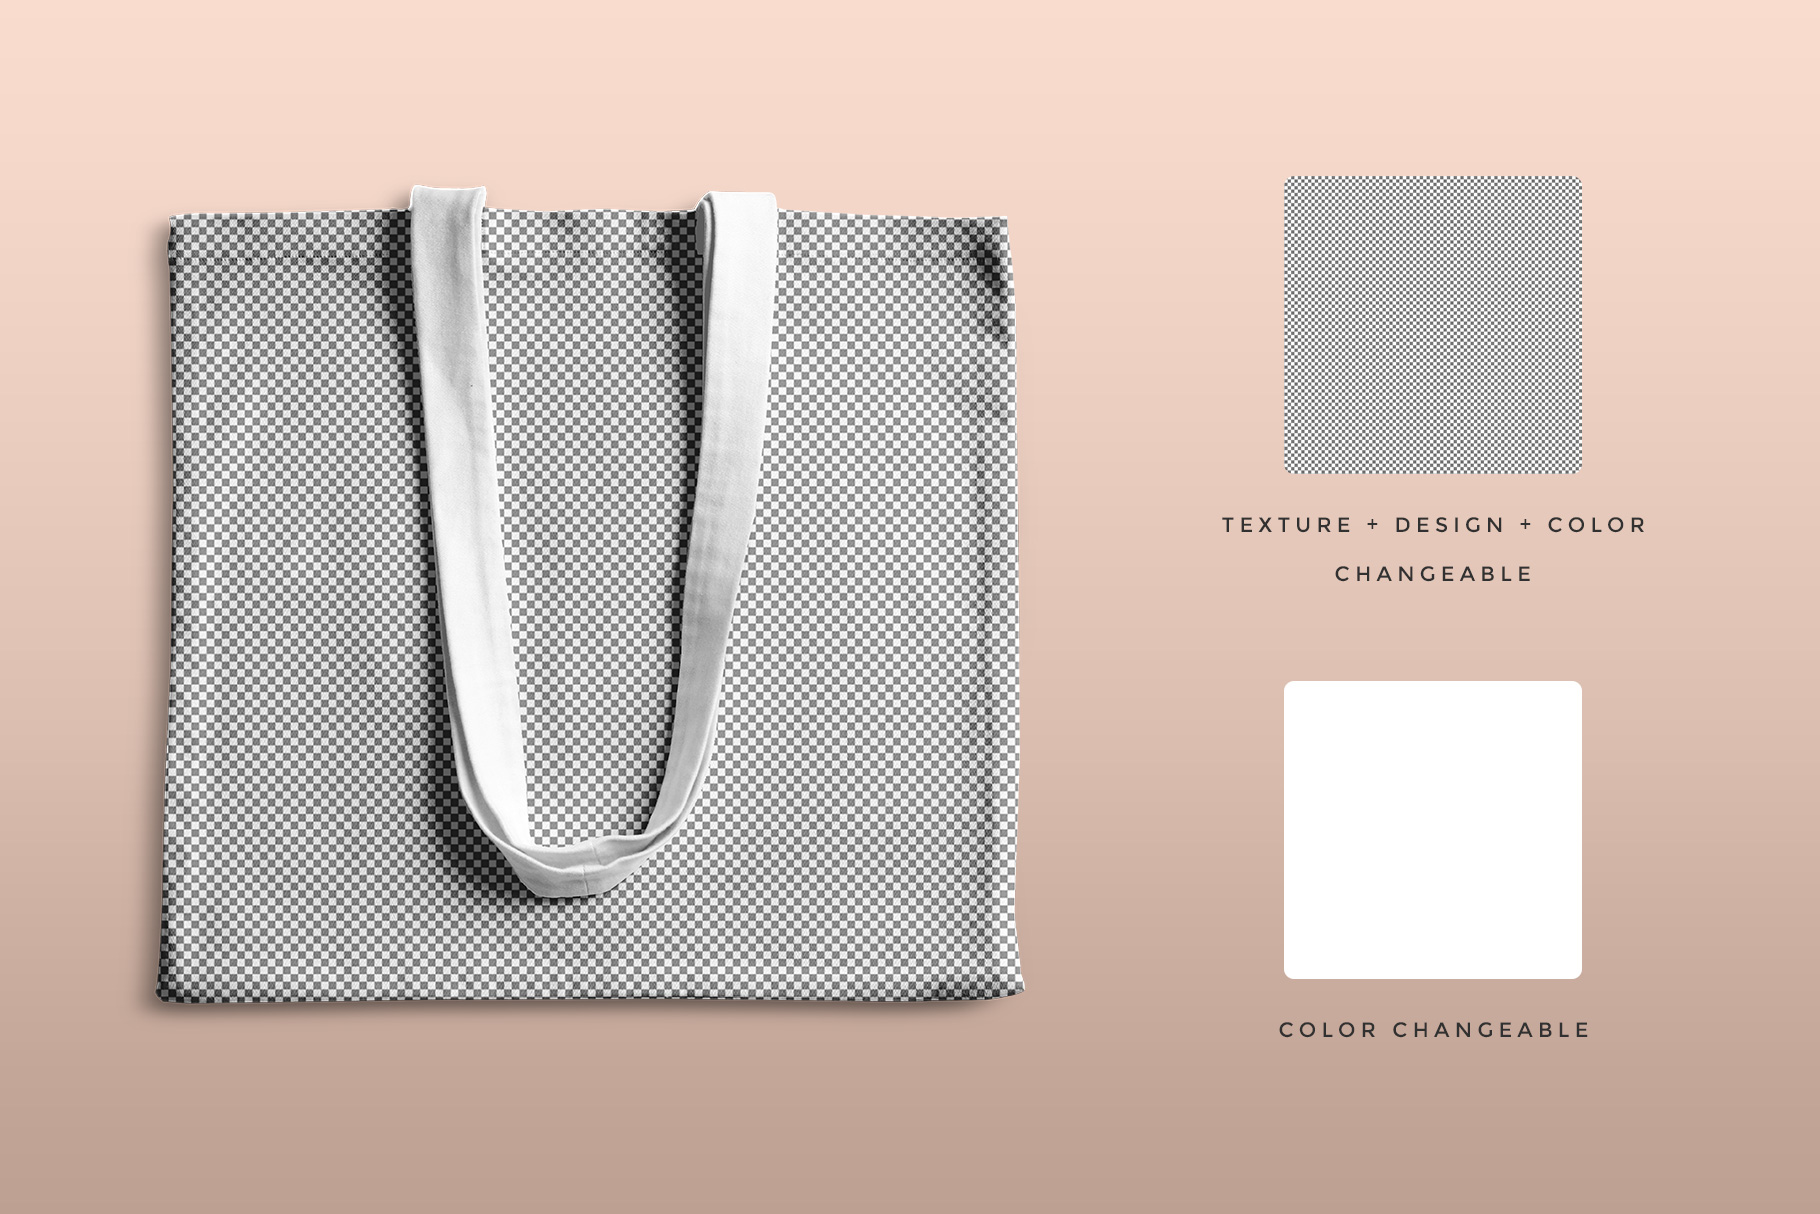 editability of the top view reusable cotton tote bag mockup